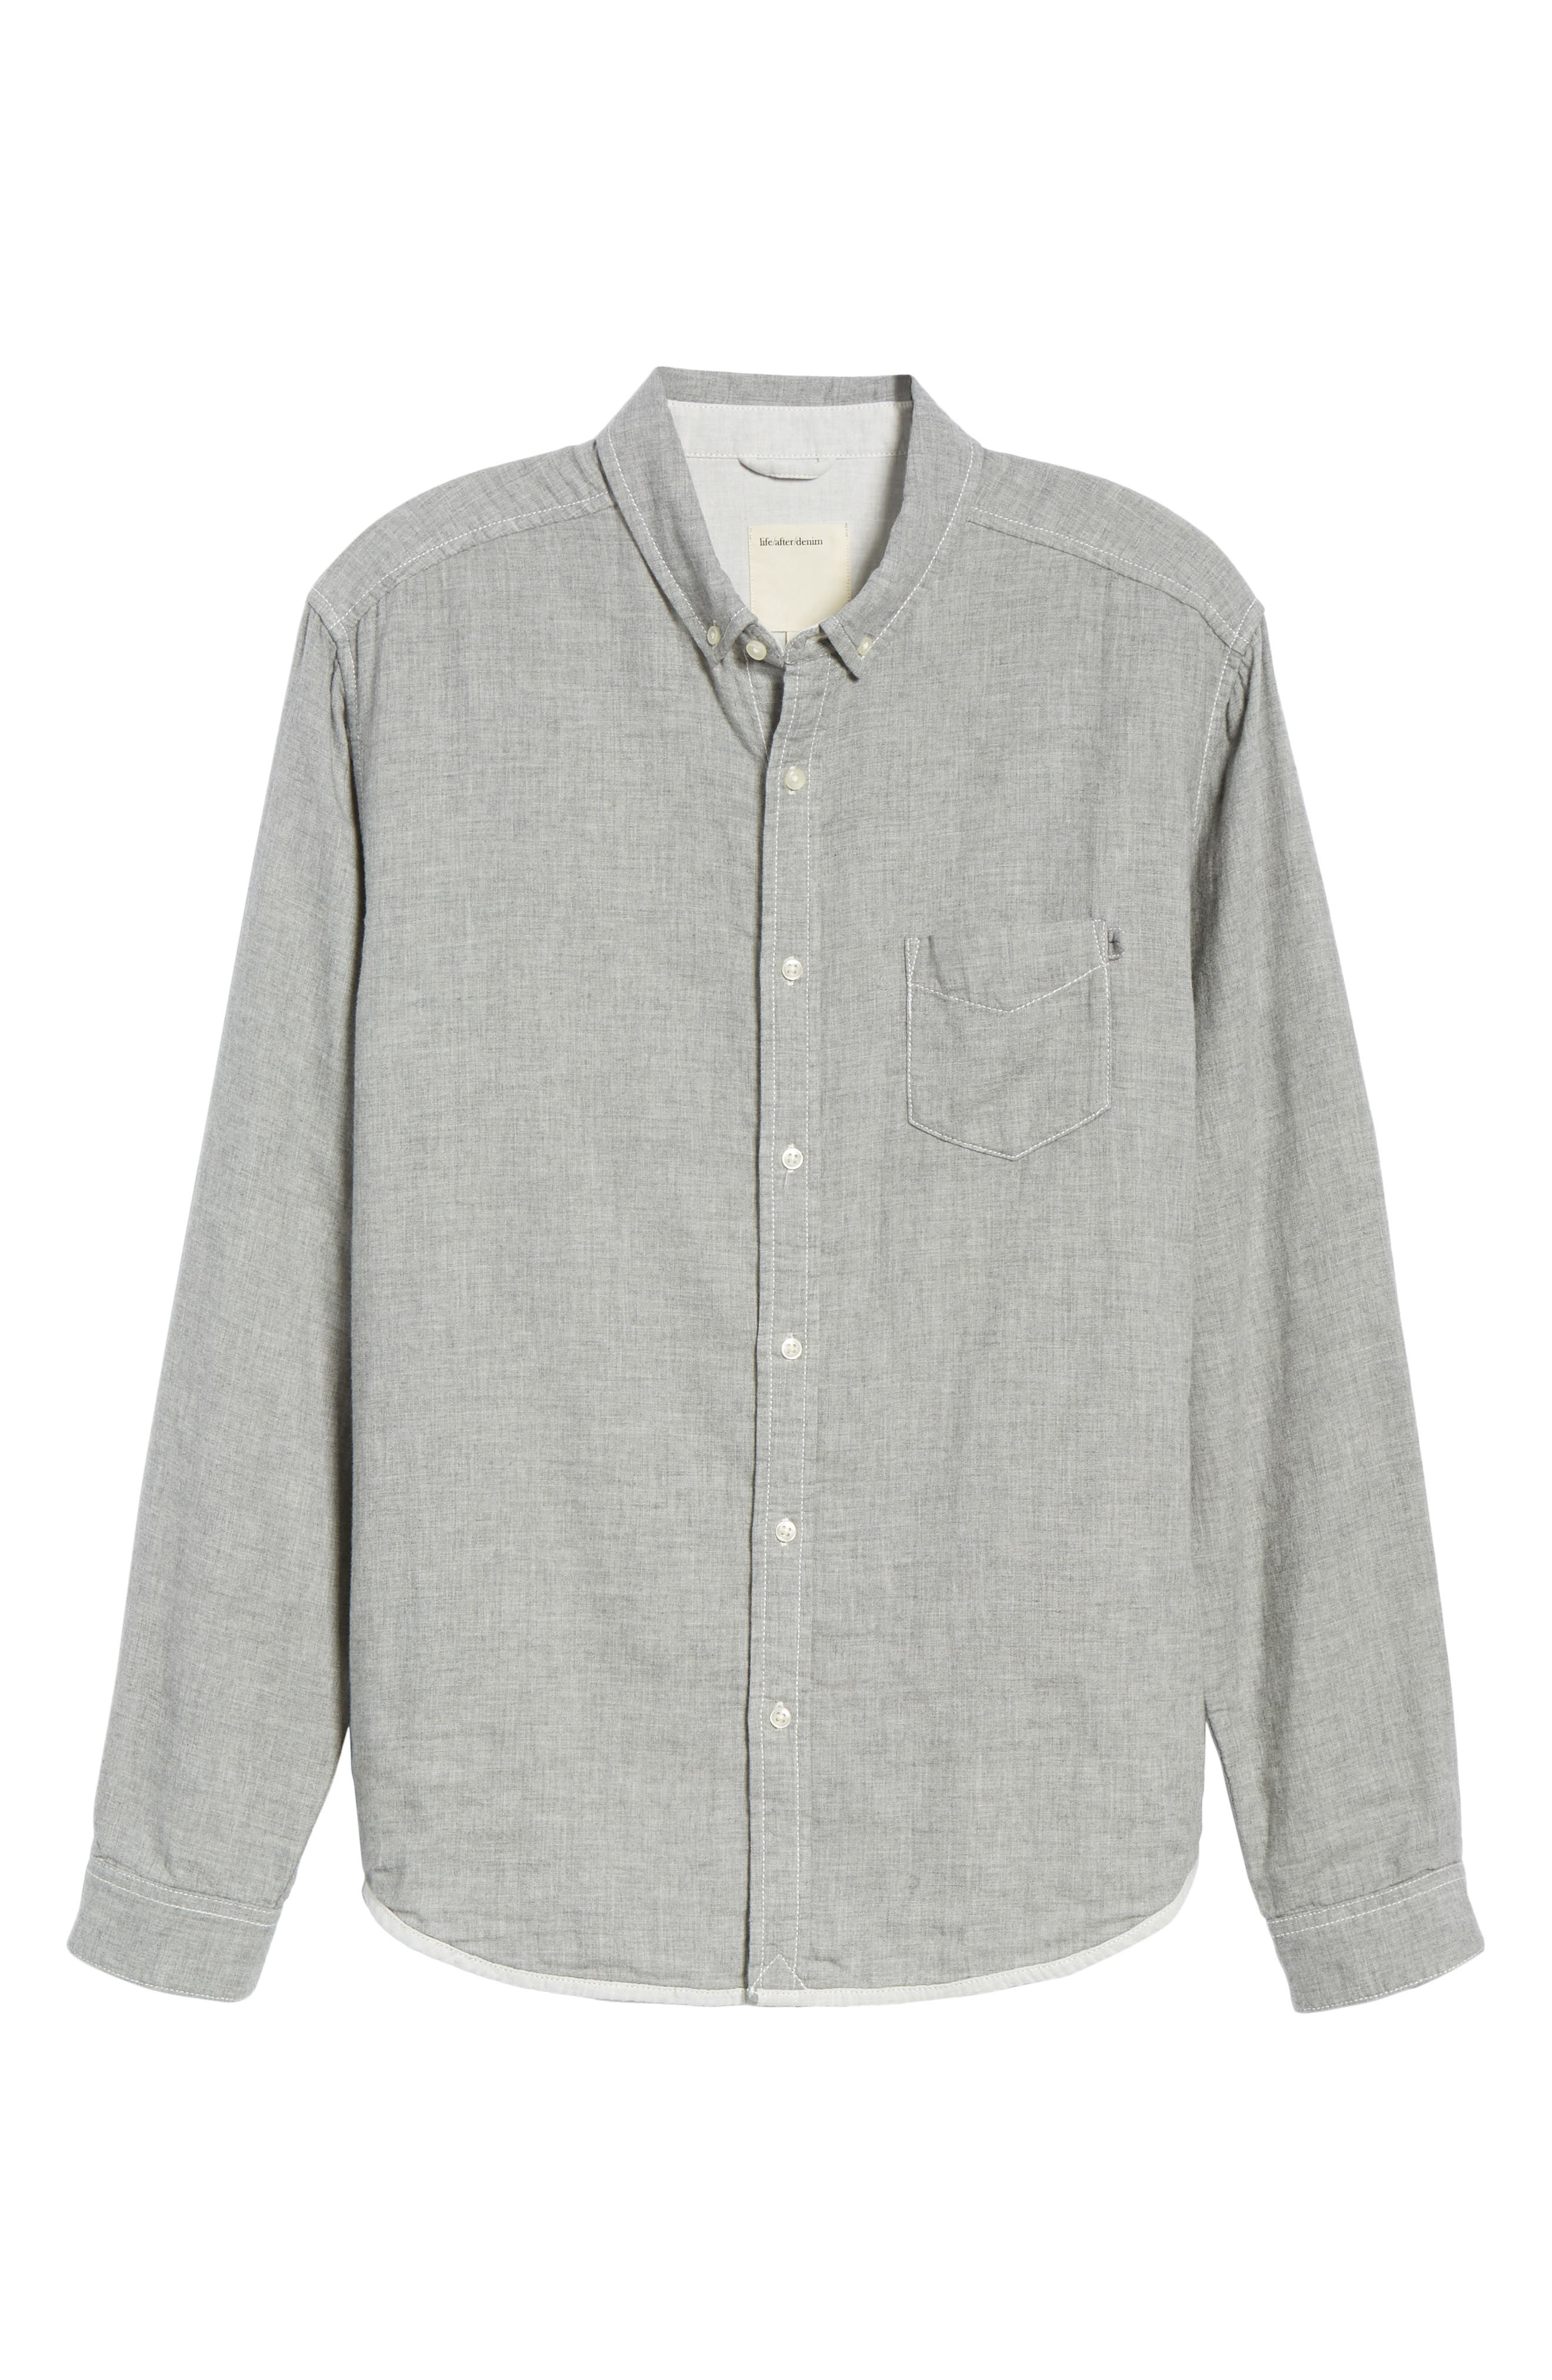 Ithaca Slim Fit Chambray Sport Shirt,                             Alternate thumbnail 5, color,                             HEATHER GREY